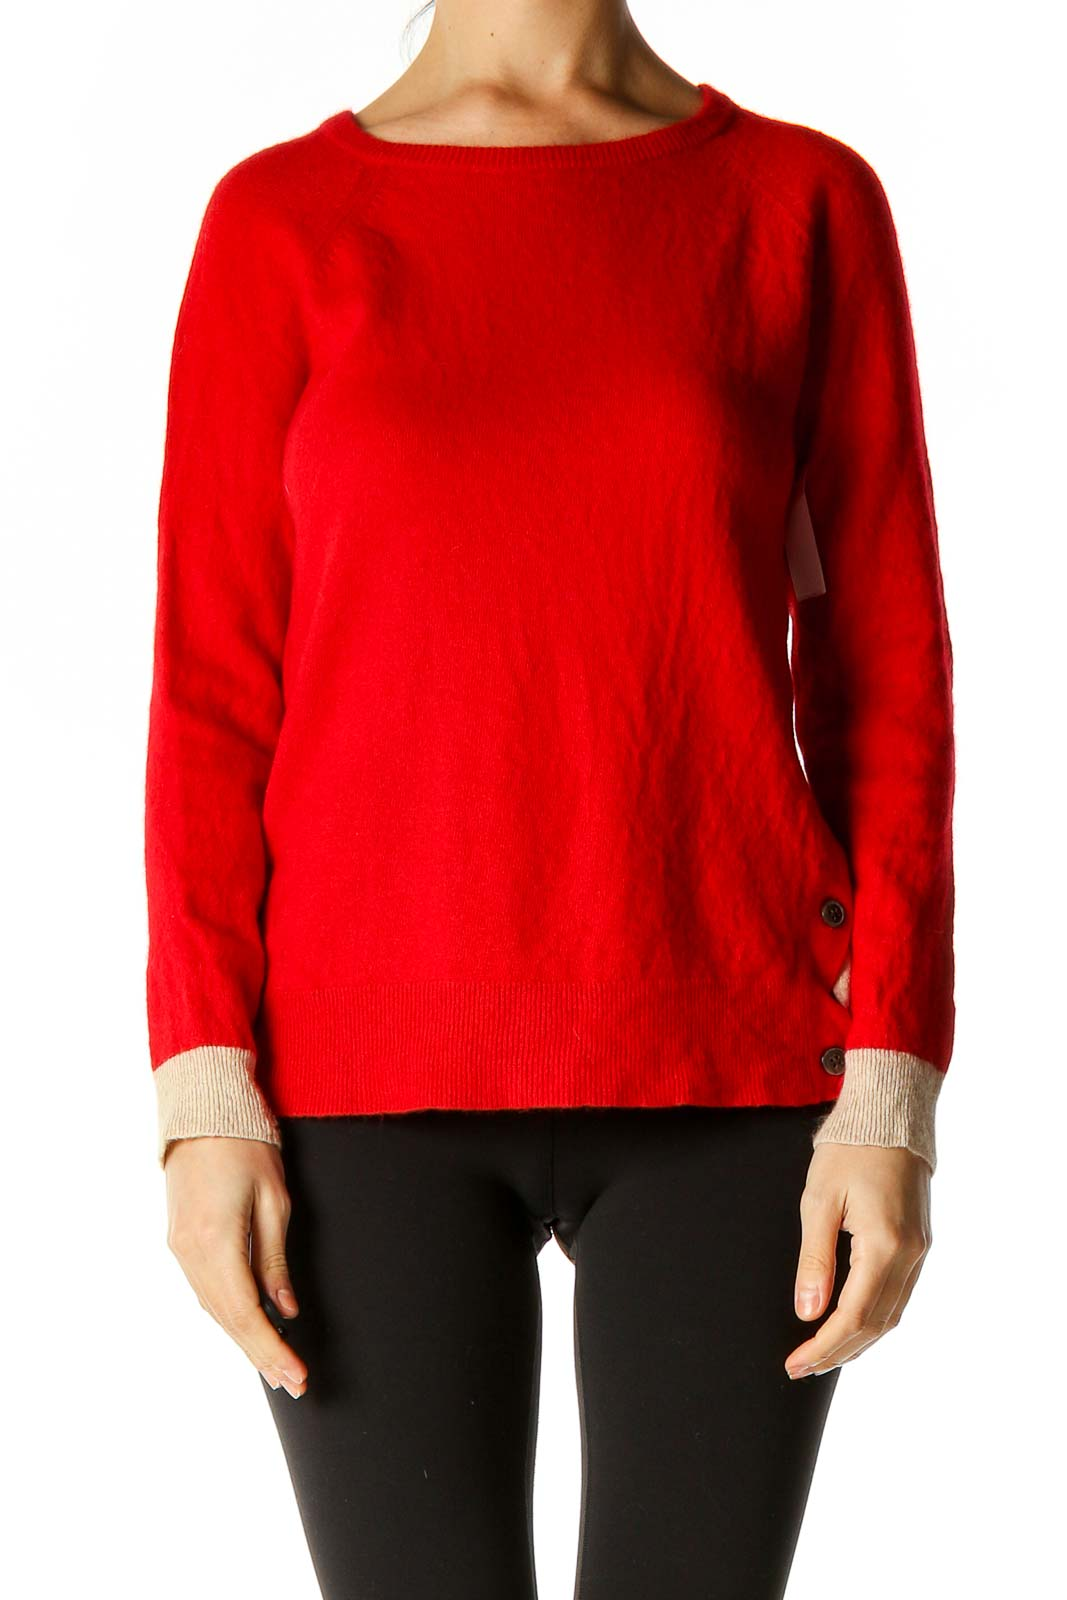 Red Colorblock All Day Wear Sweater Front